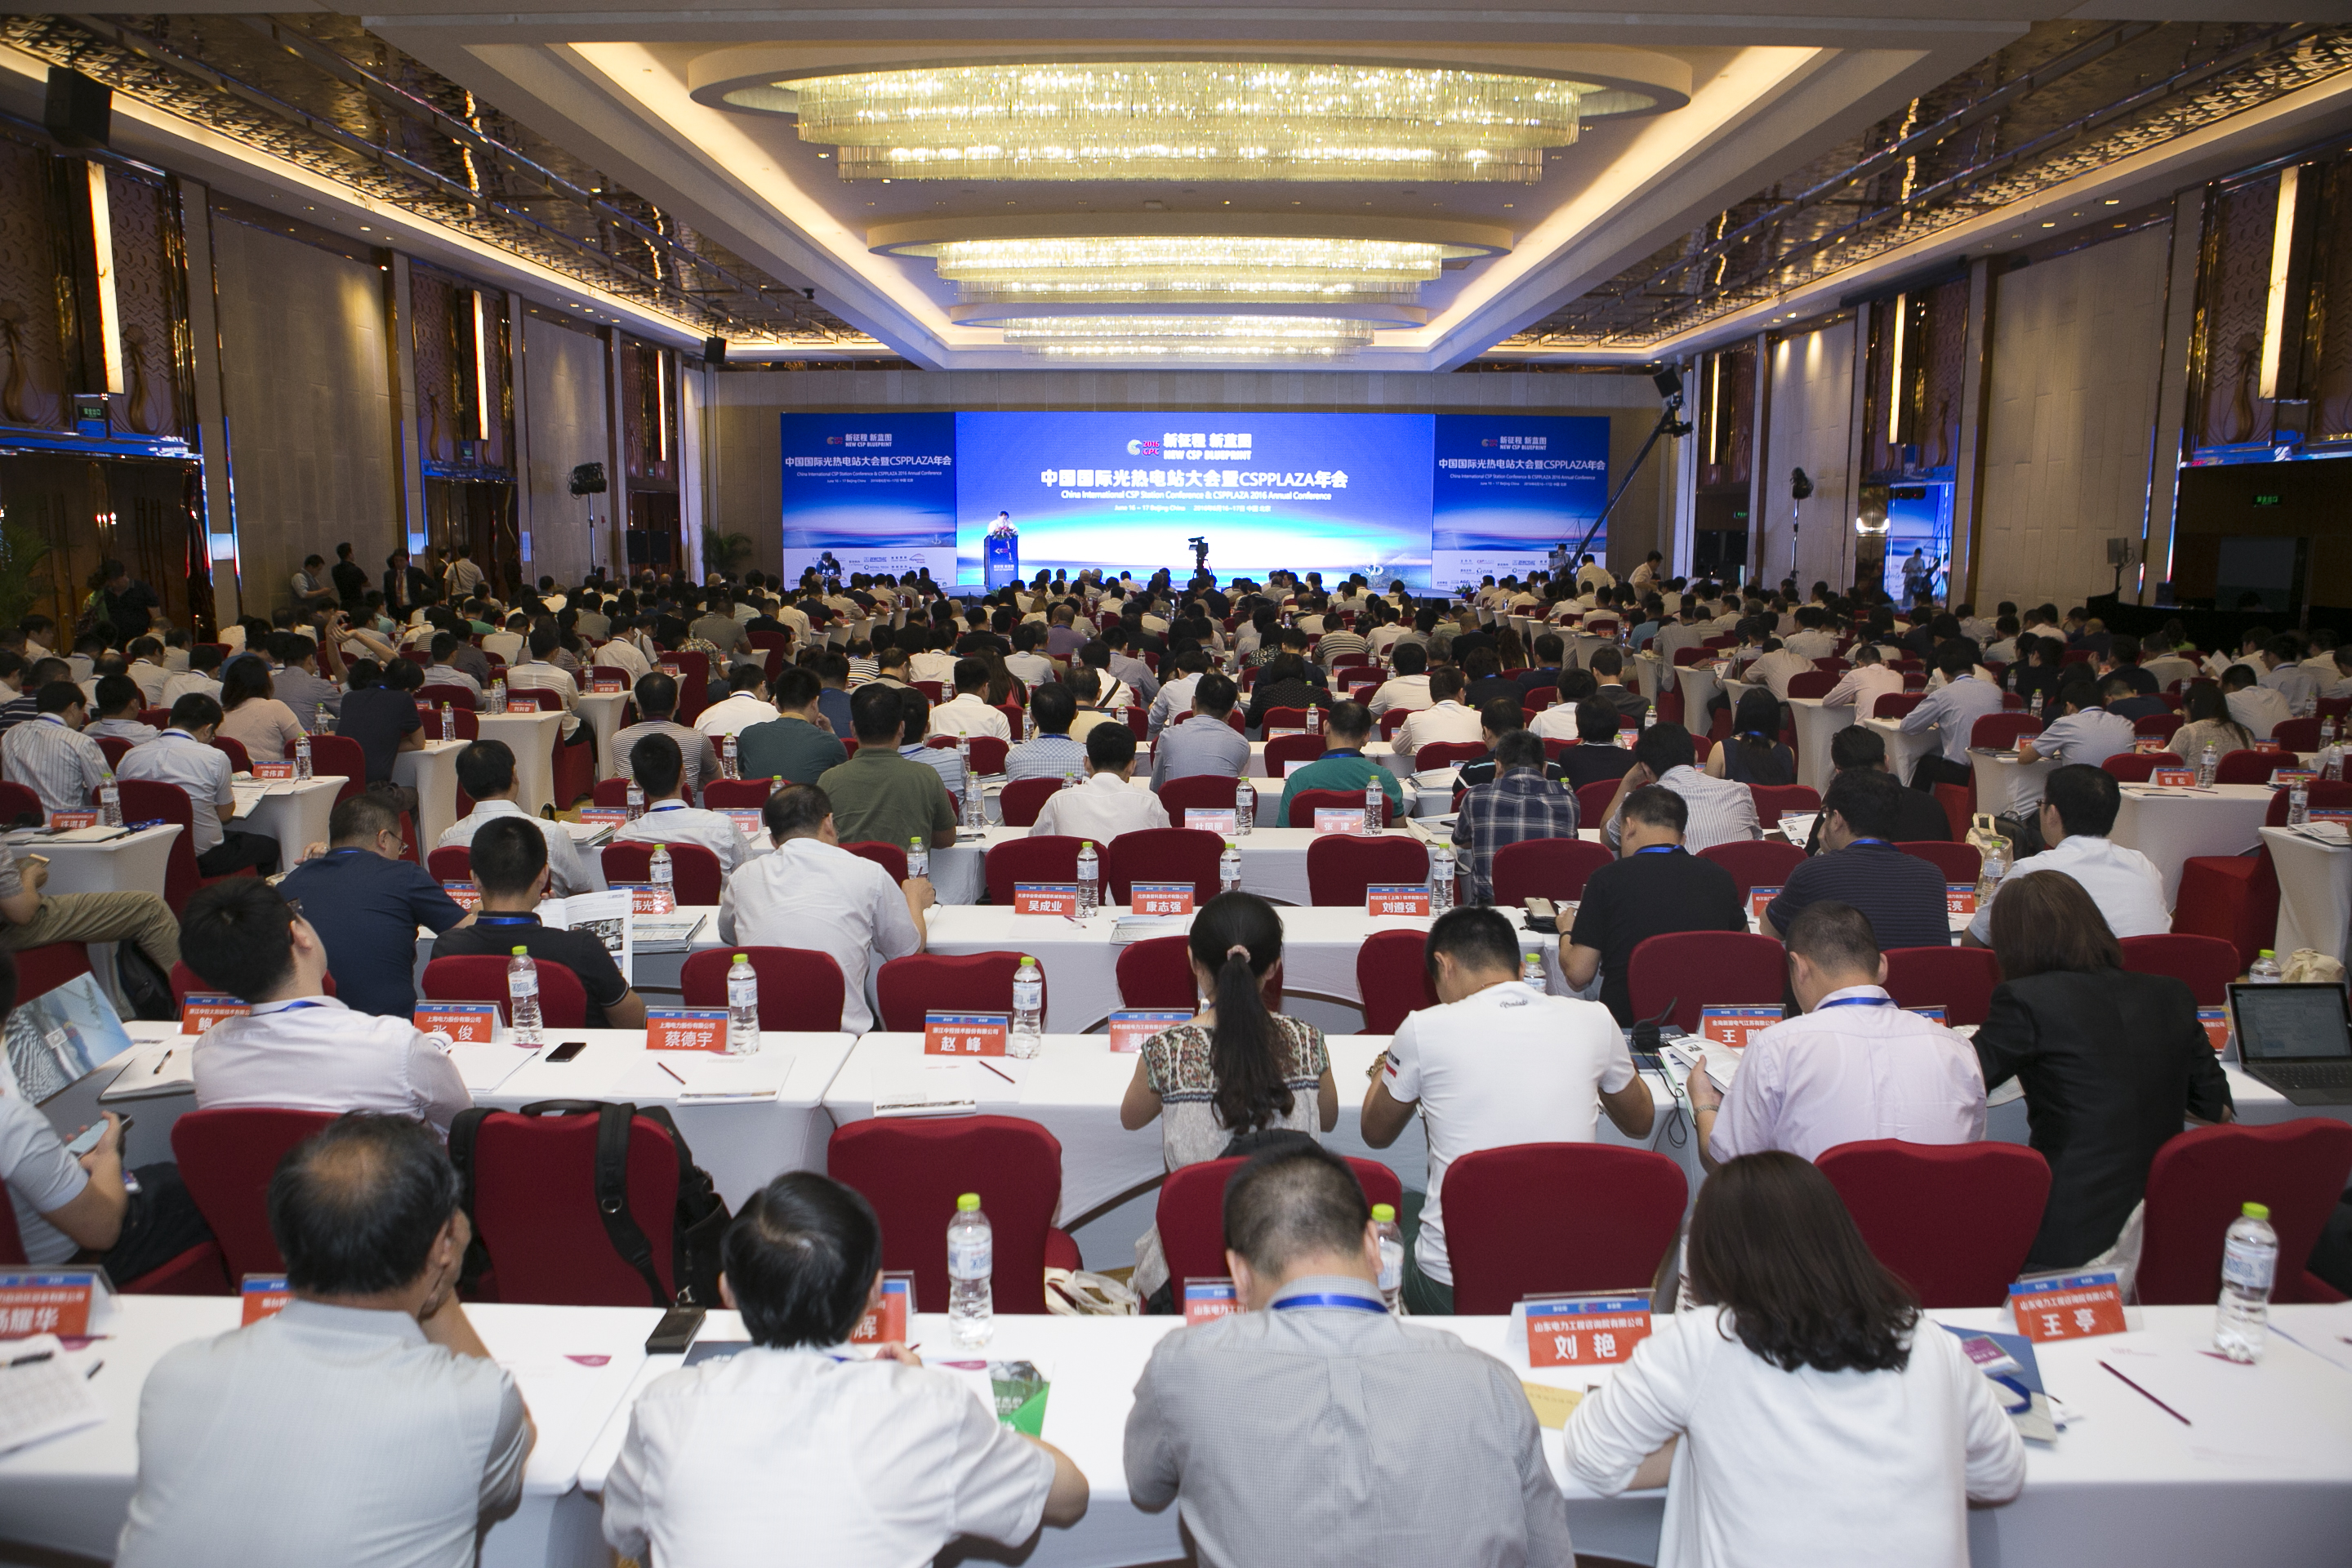 List of companies attending 2019 China International CSP Conference